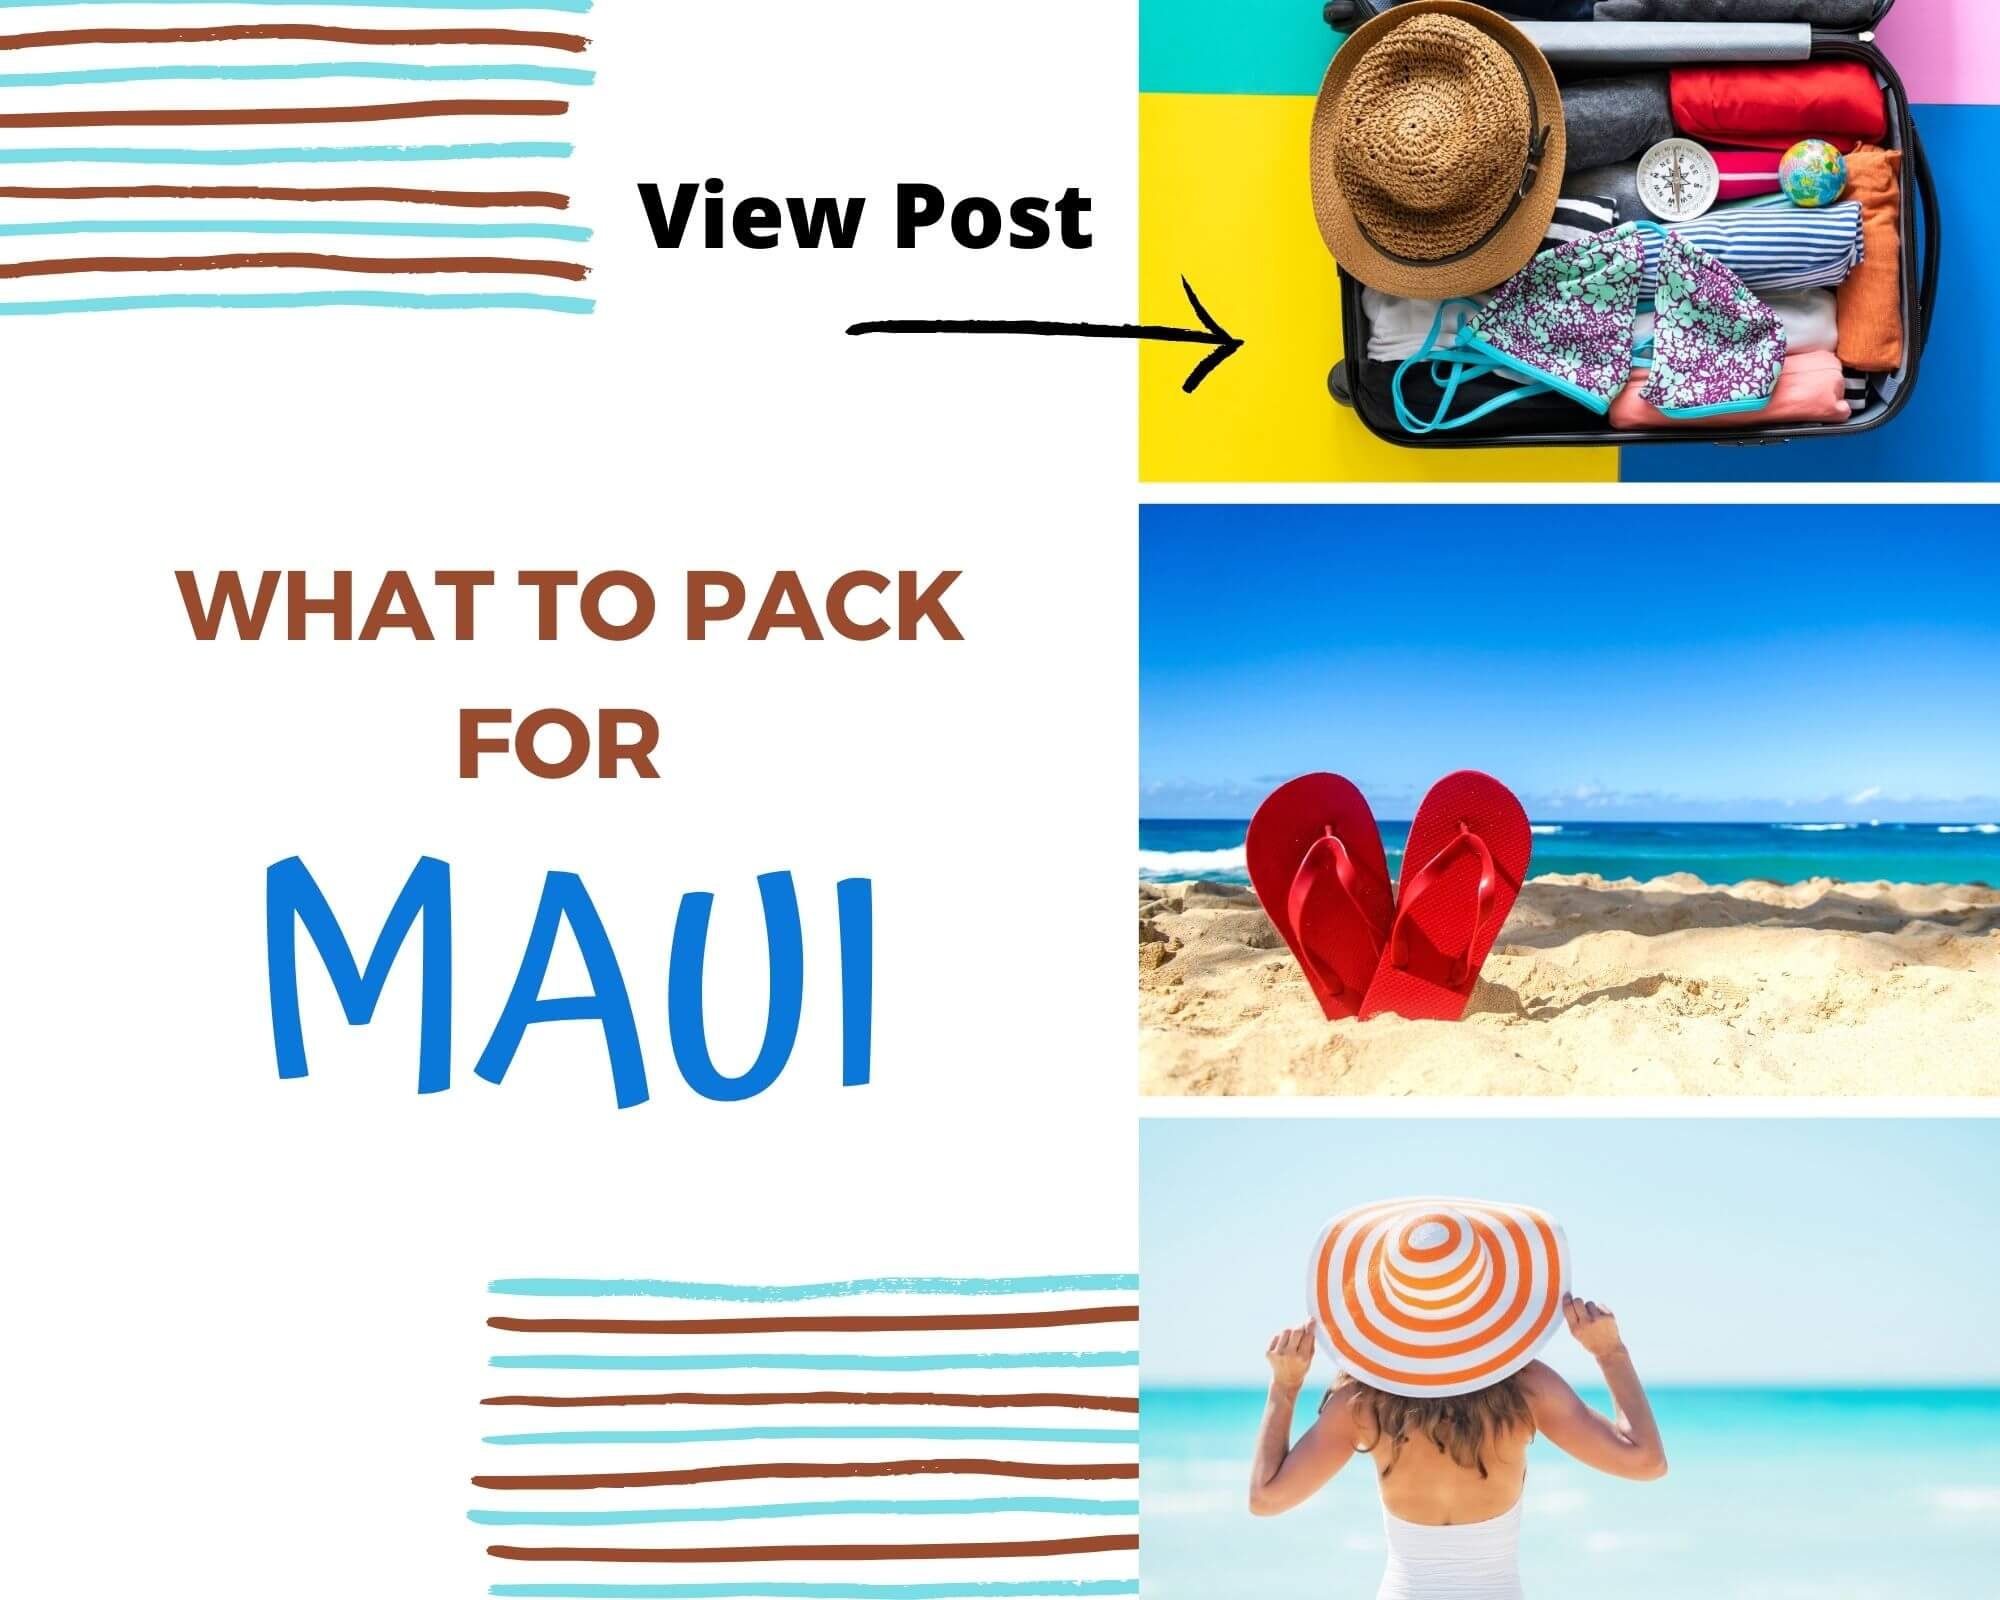 What to pack for maui